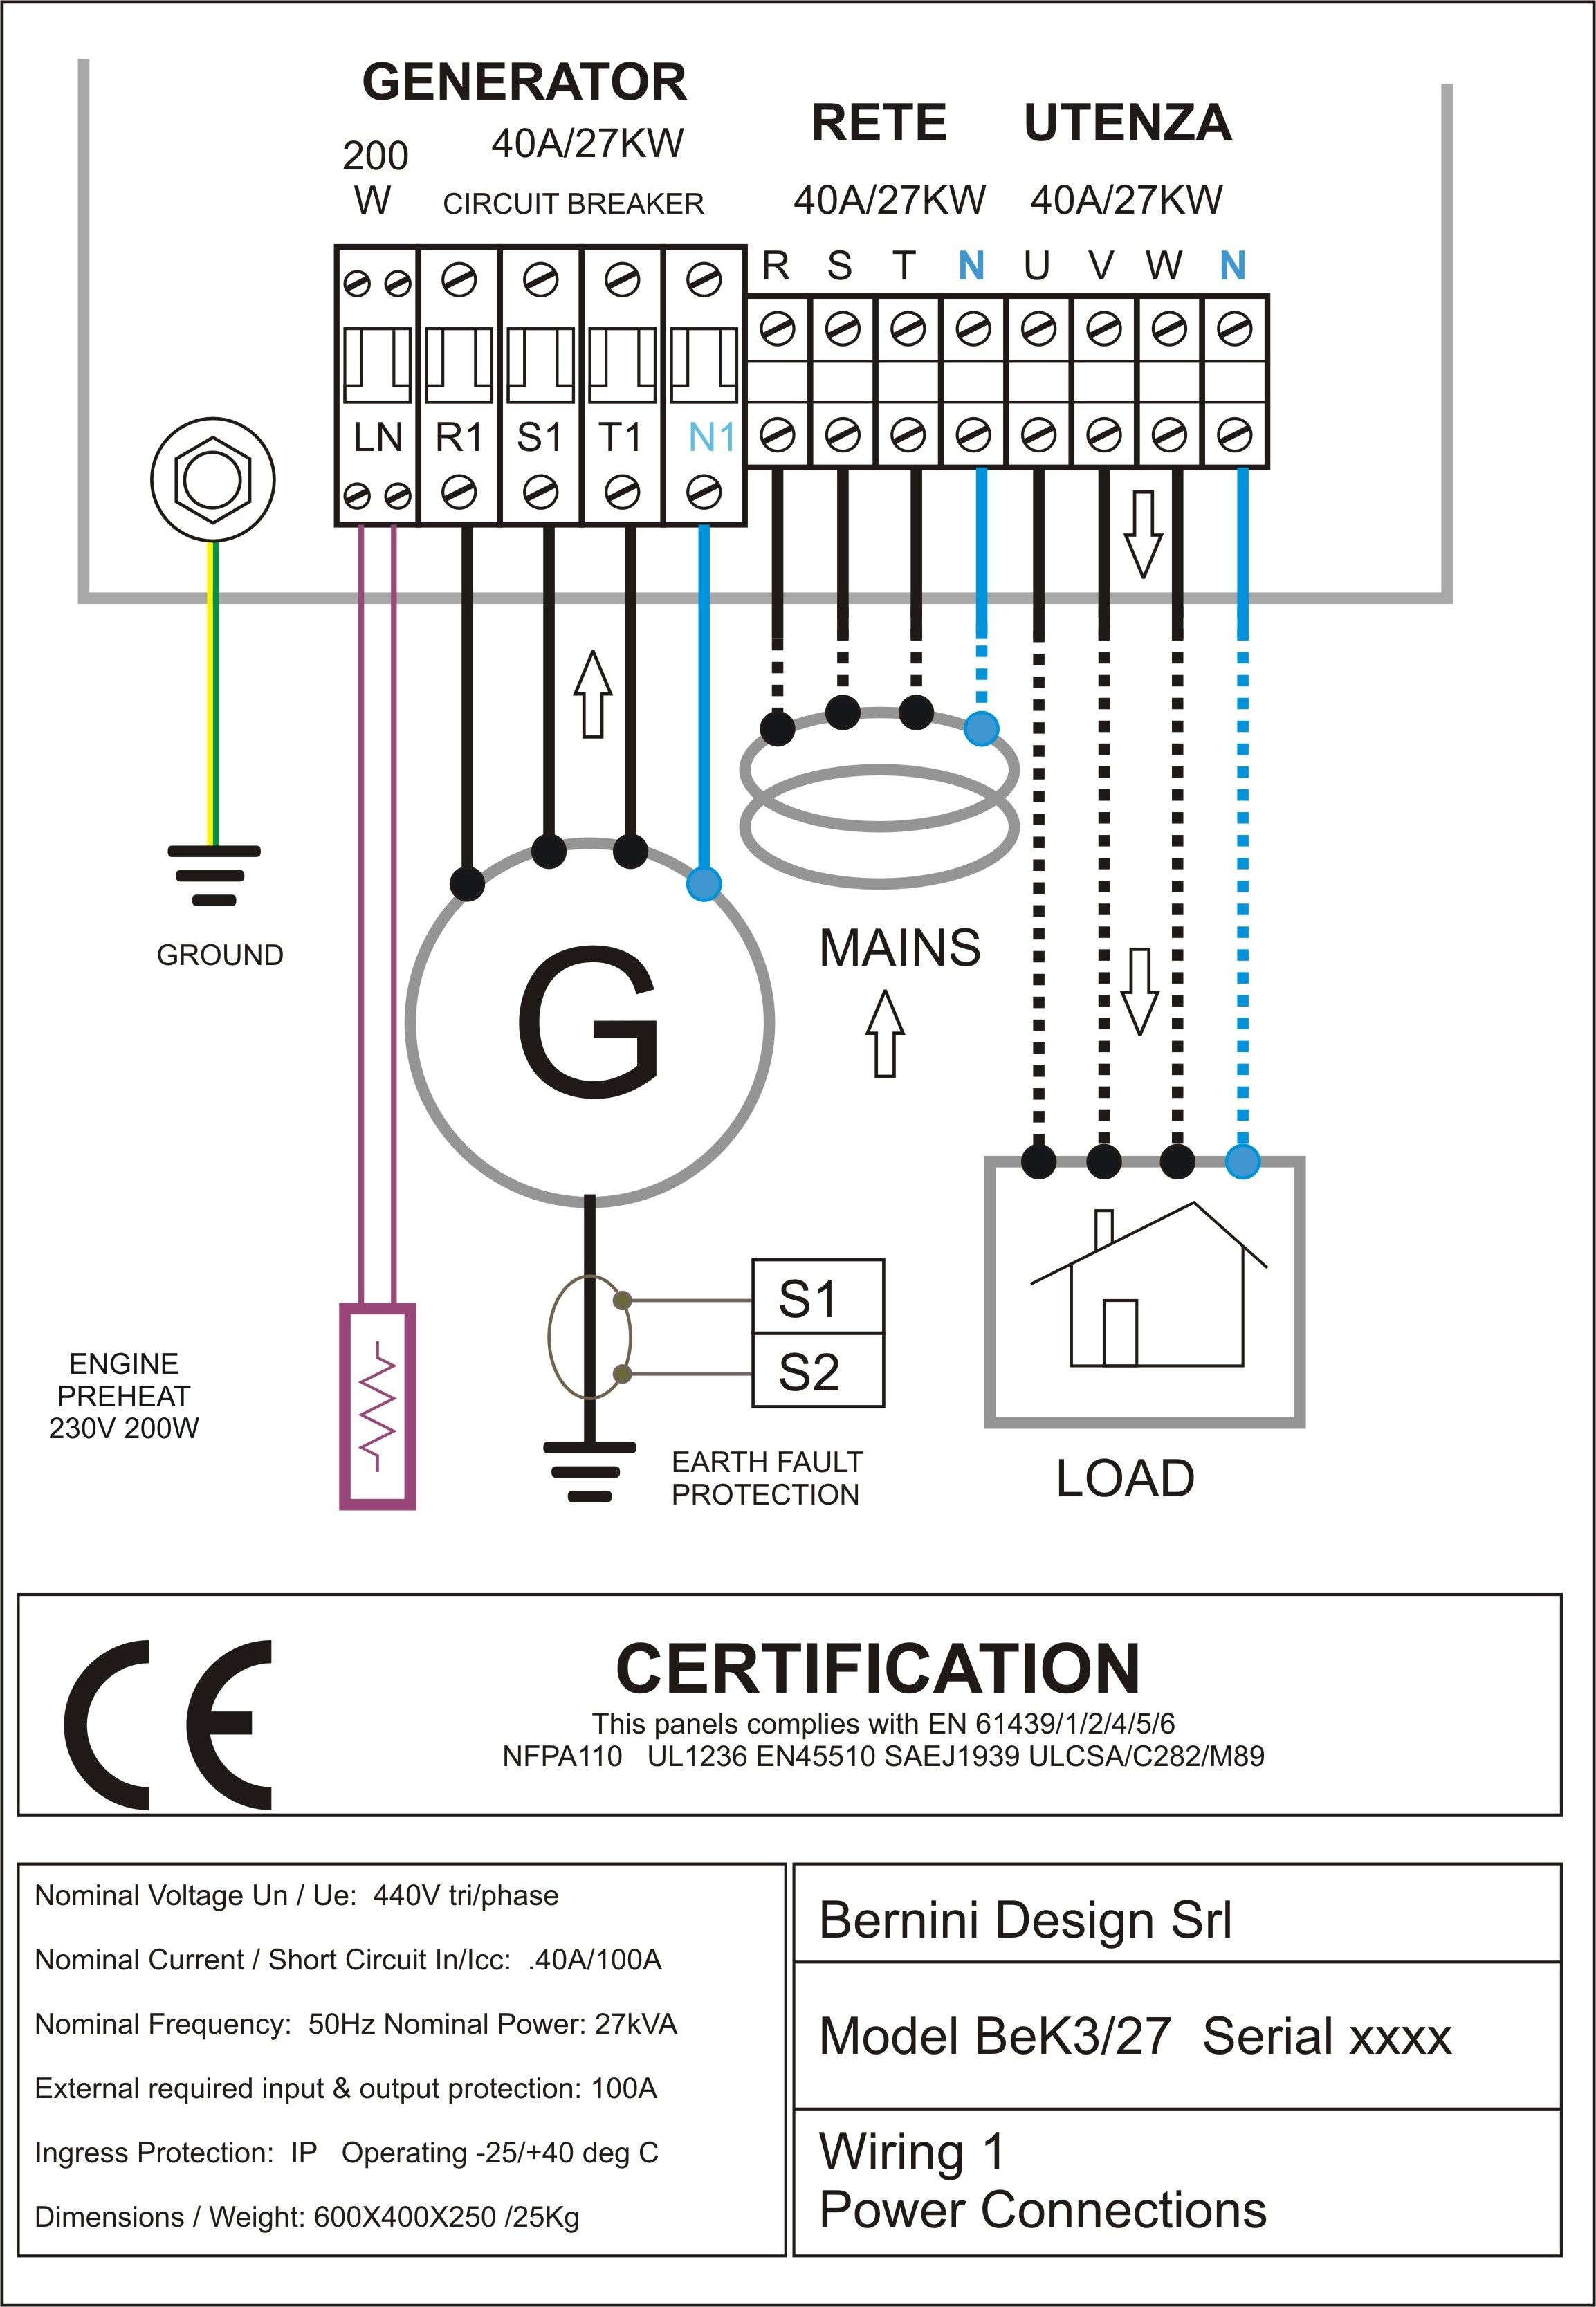 Clutch System Diagram Sel Generator Control Panel Wiring Diagram Ac Connections Of Clutch System Diagram